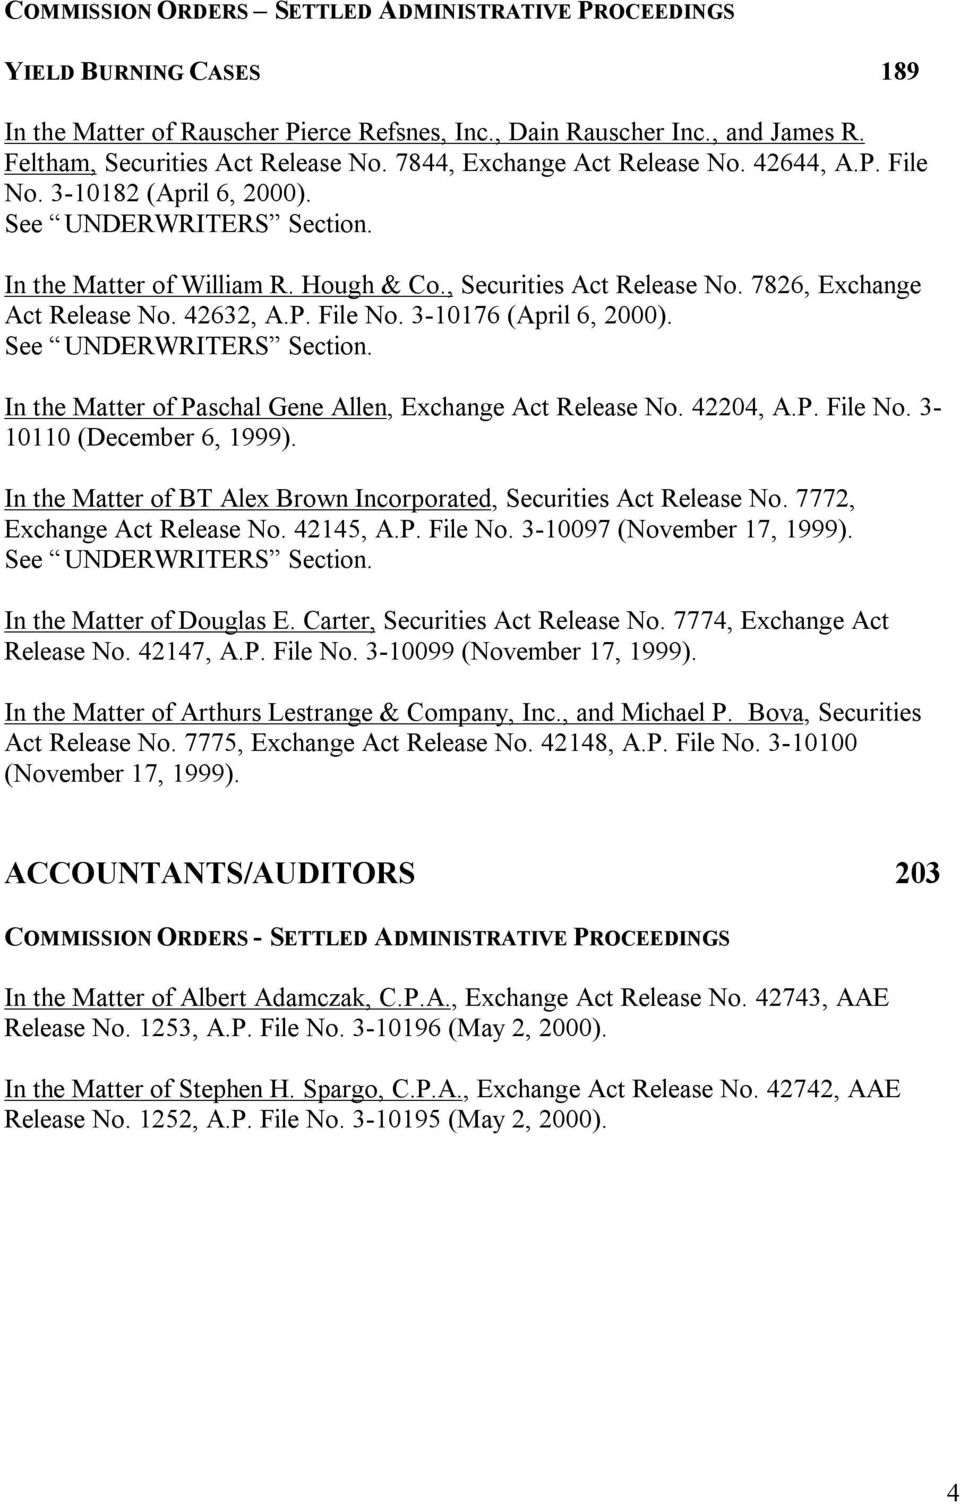 7826, Exchange Act Release No. 42632, A.P. File No. 3-10176 (April 6, 2000). See UNDERWRITERS Section. In the Matter of Paschal Gene Allen, Exchange Act Release No. 42204, A.P. File No. 3-10110 (December 6, 1999).